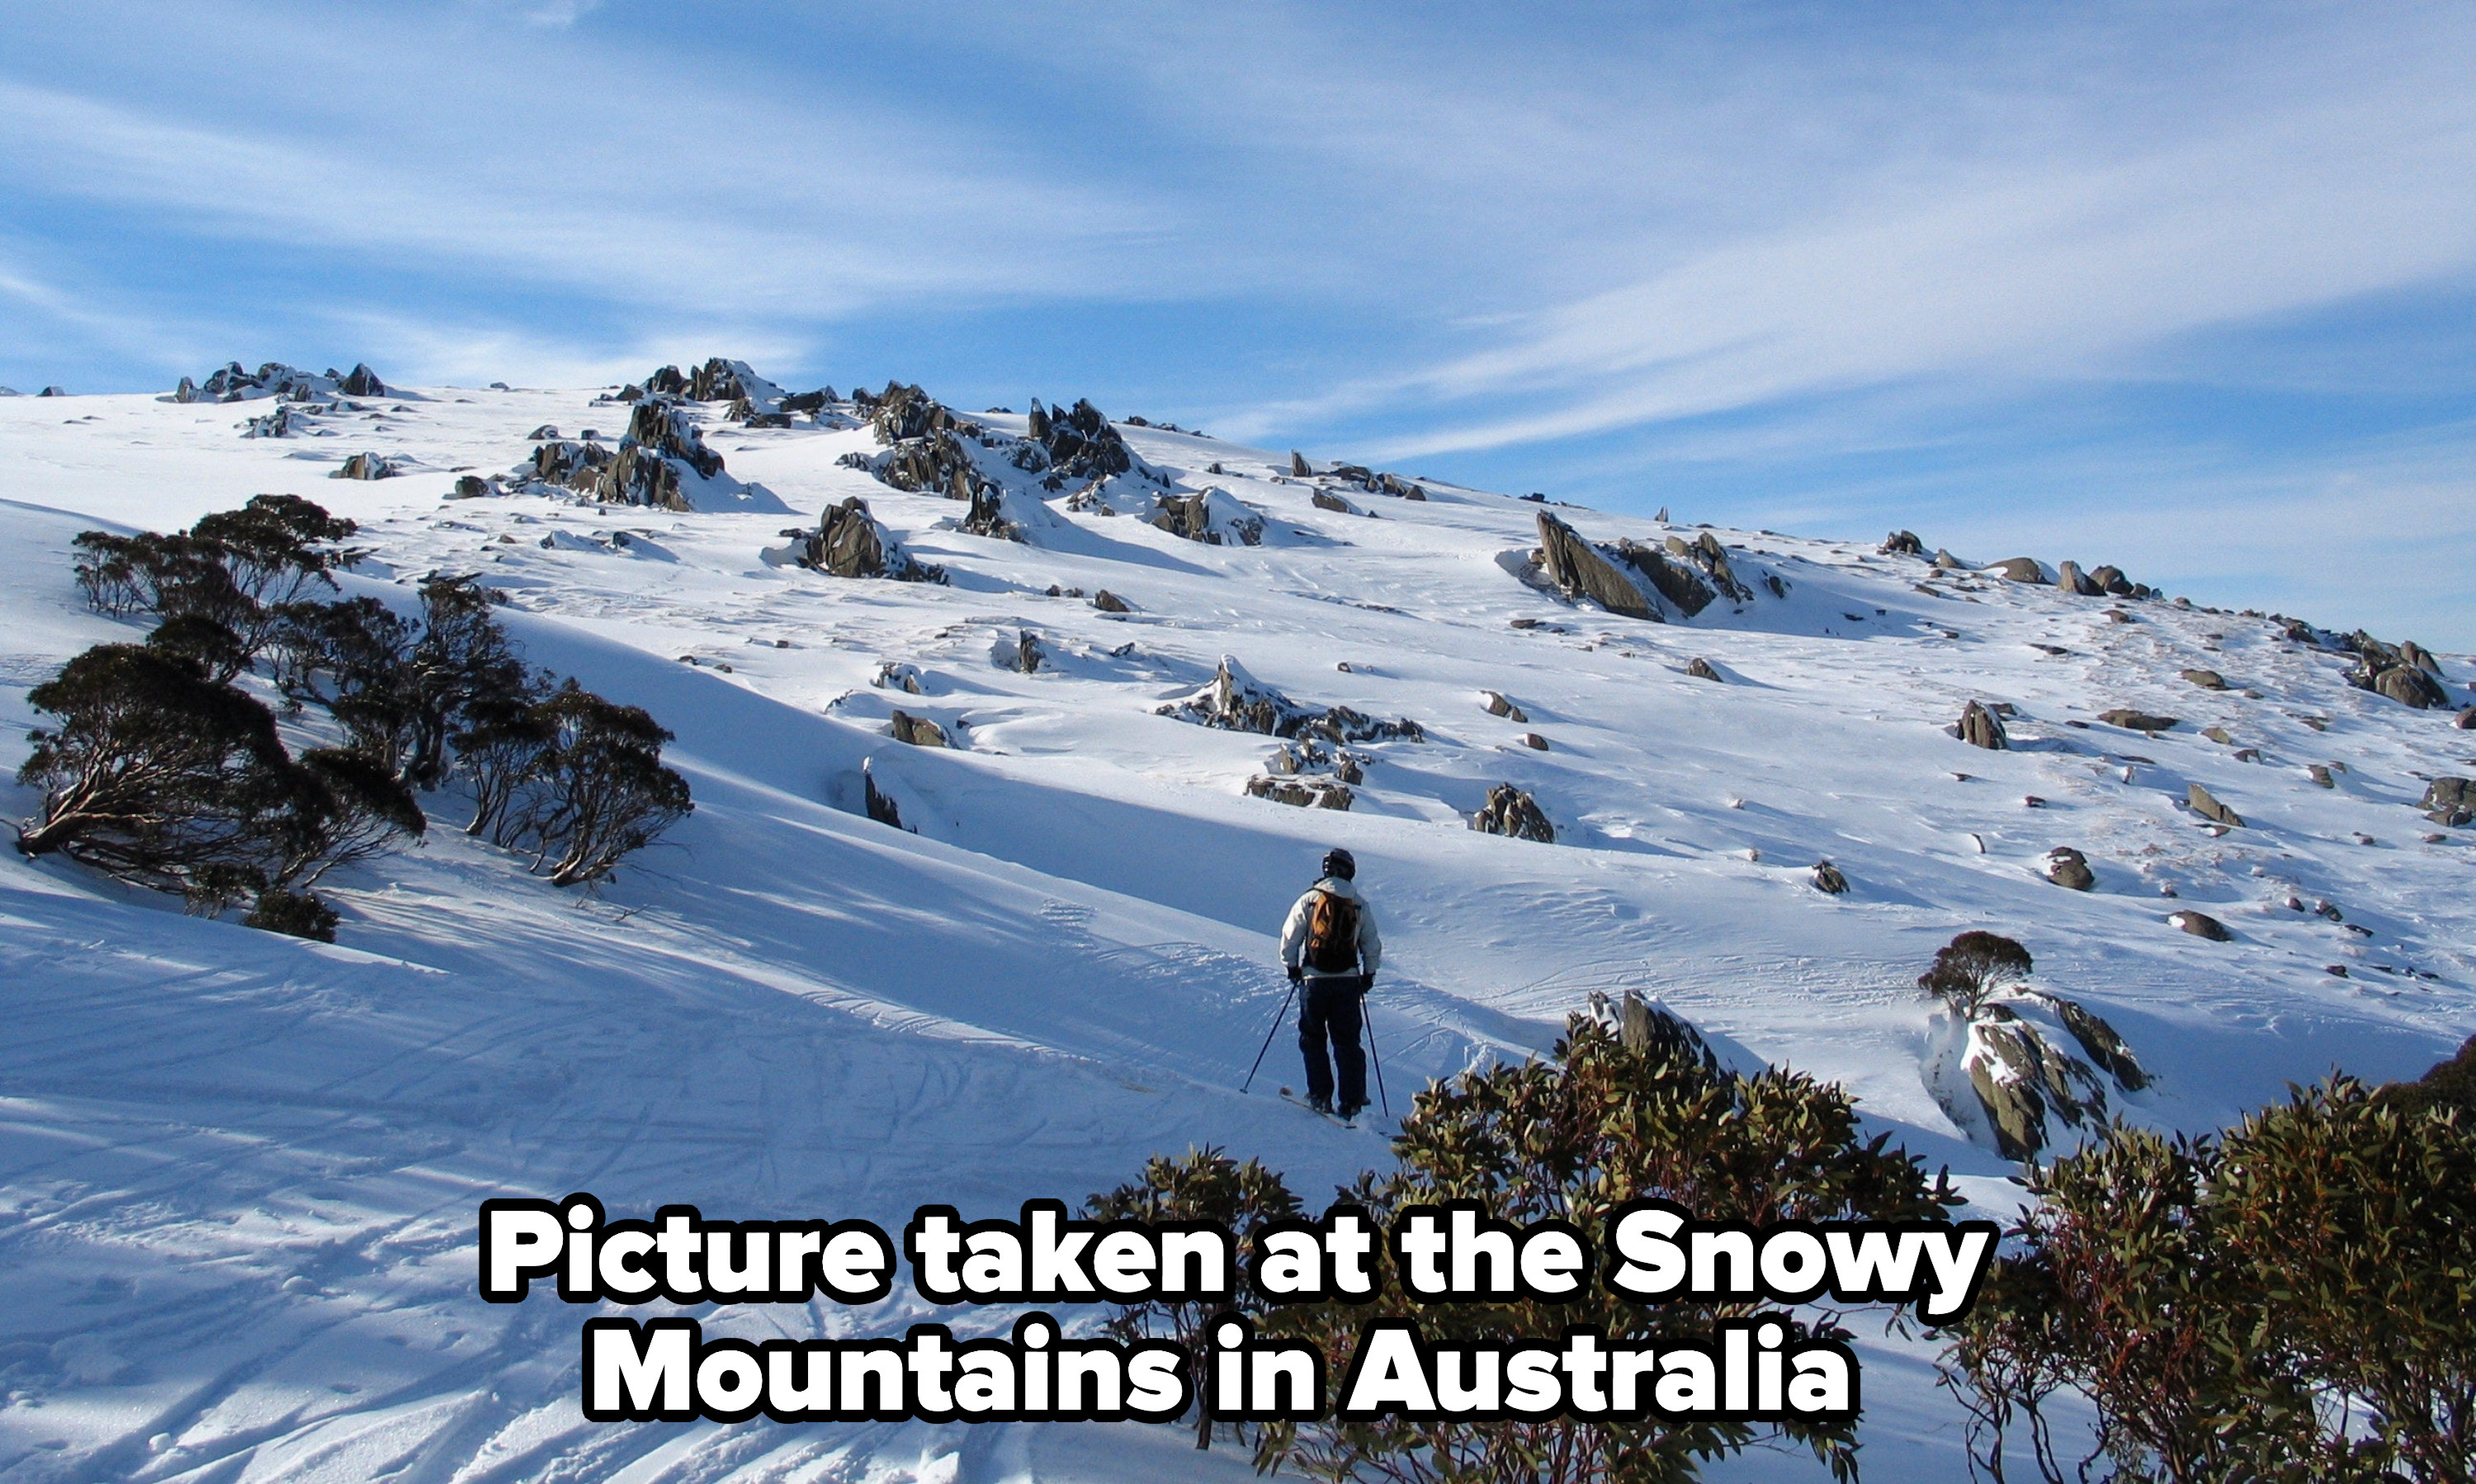 A picture of the Snowy Mountains in Australia